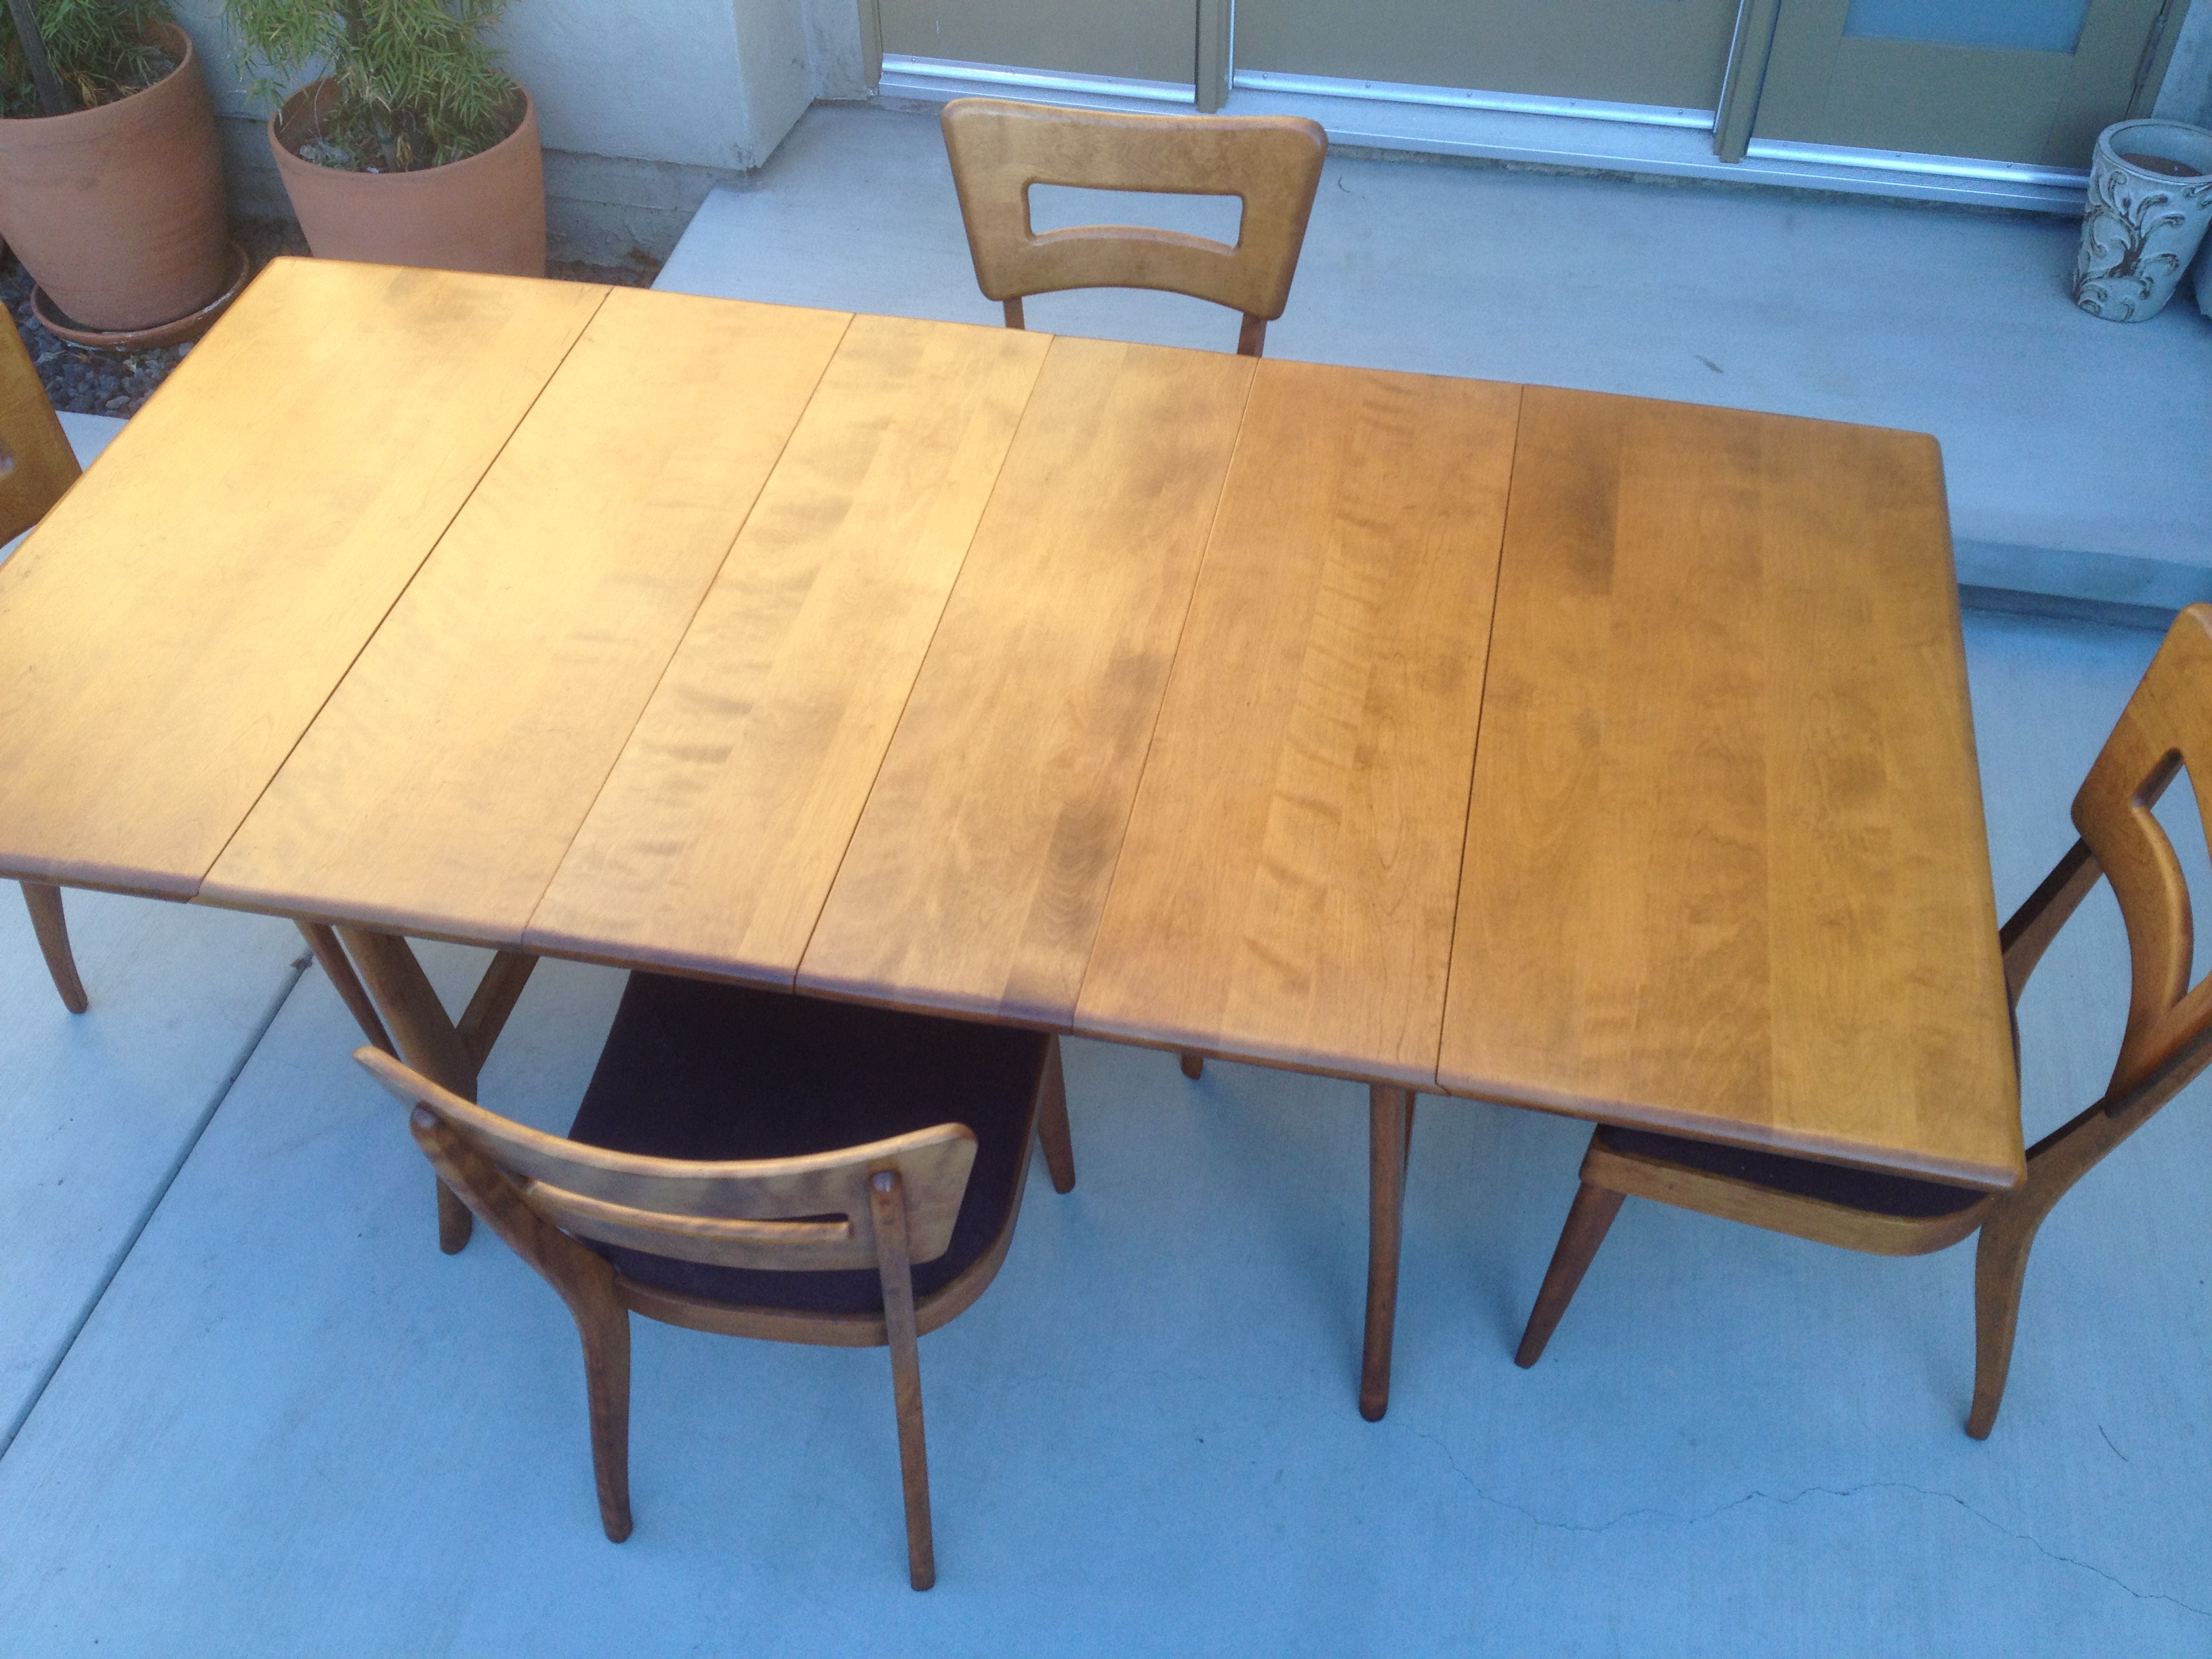 heywood wakefield dining table and chairs bean bag set 43 4  sold